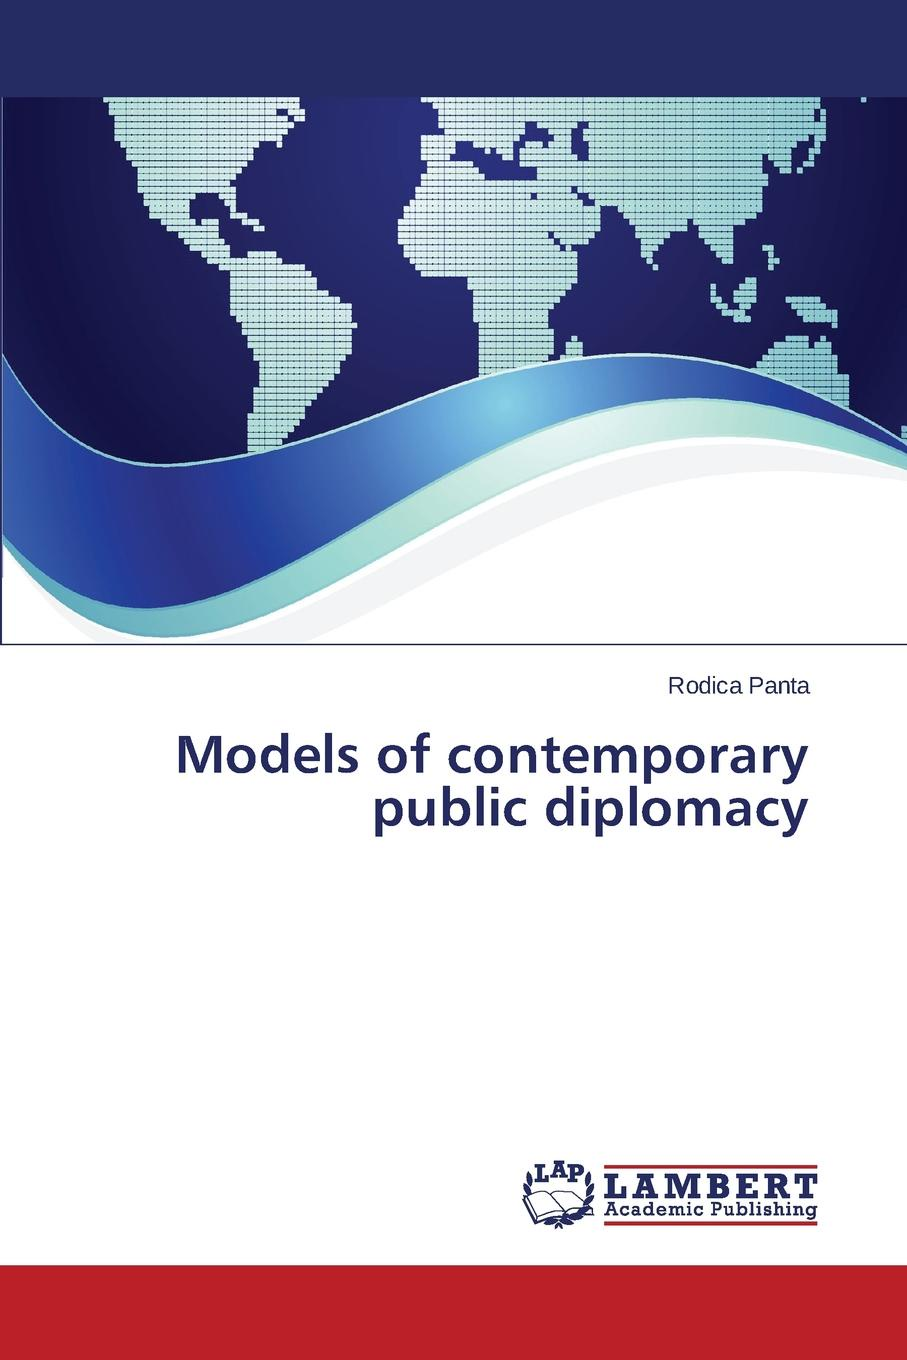 Panta Rodica Models of contemporary public diplomacy